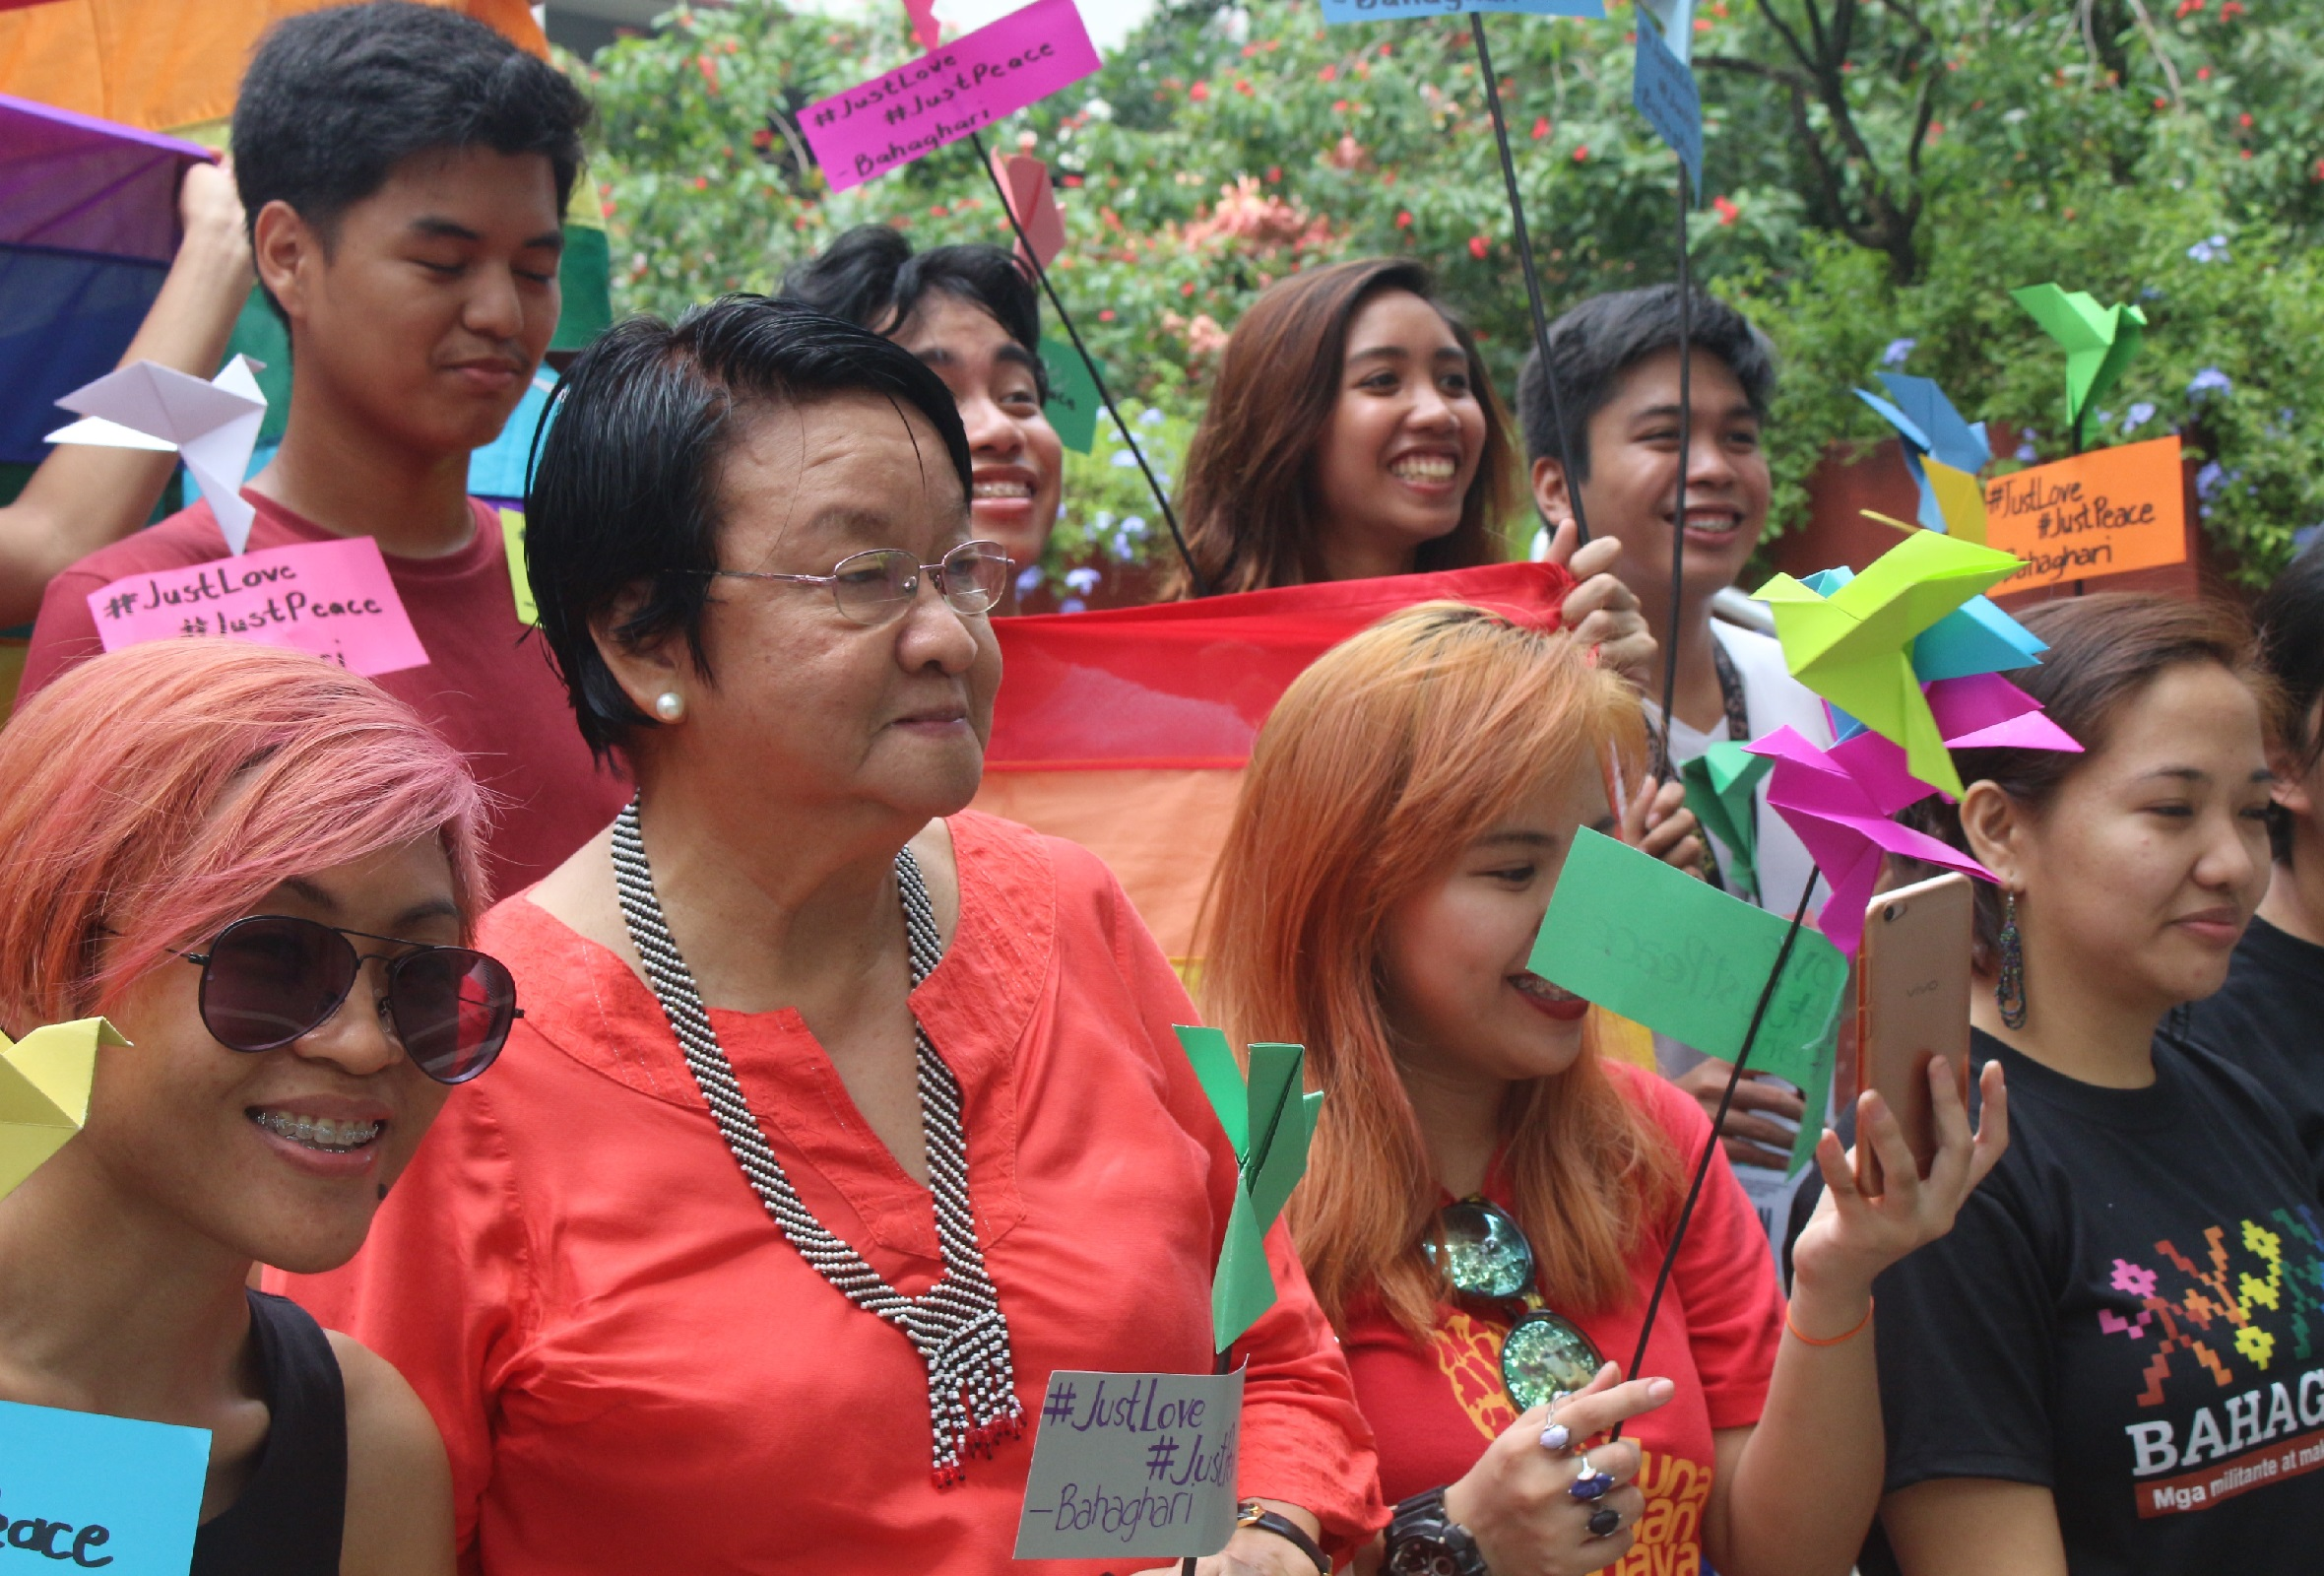 Social Welfare Secretary Judy Taguiwalo at the candle-lighting gathering in UP Diliman before the Pride March in Marikina City (Photo by Daniel Boone/Bulatlat)